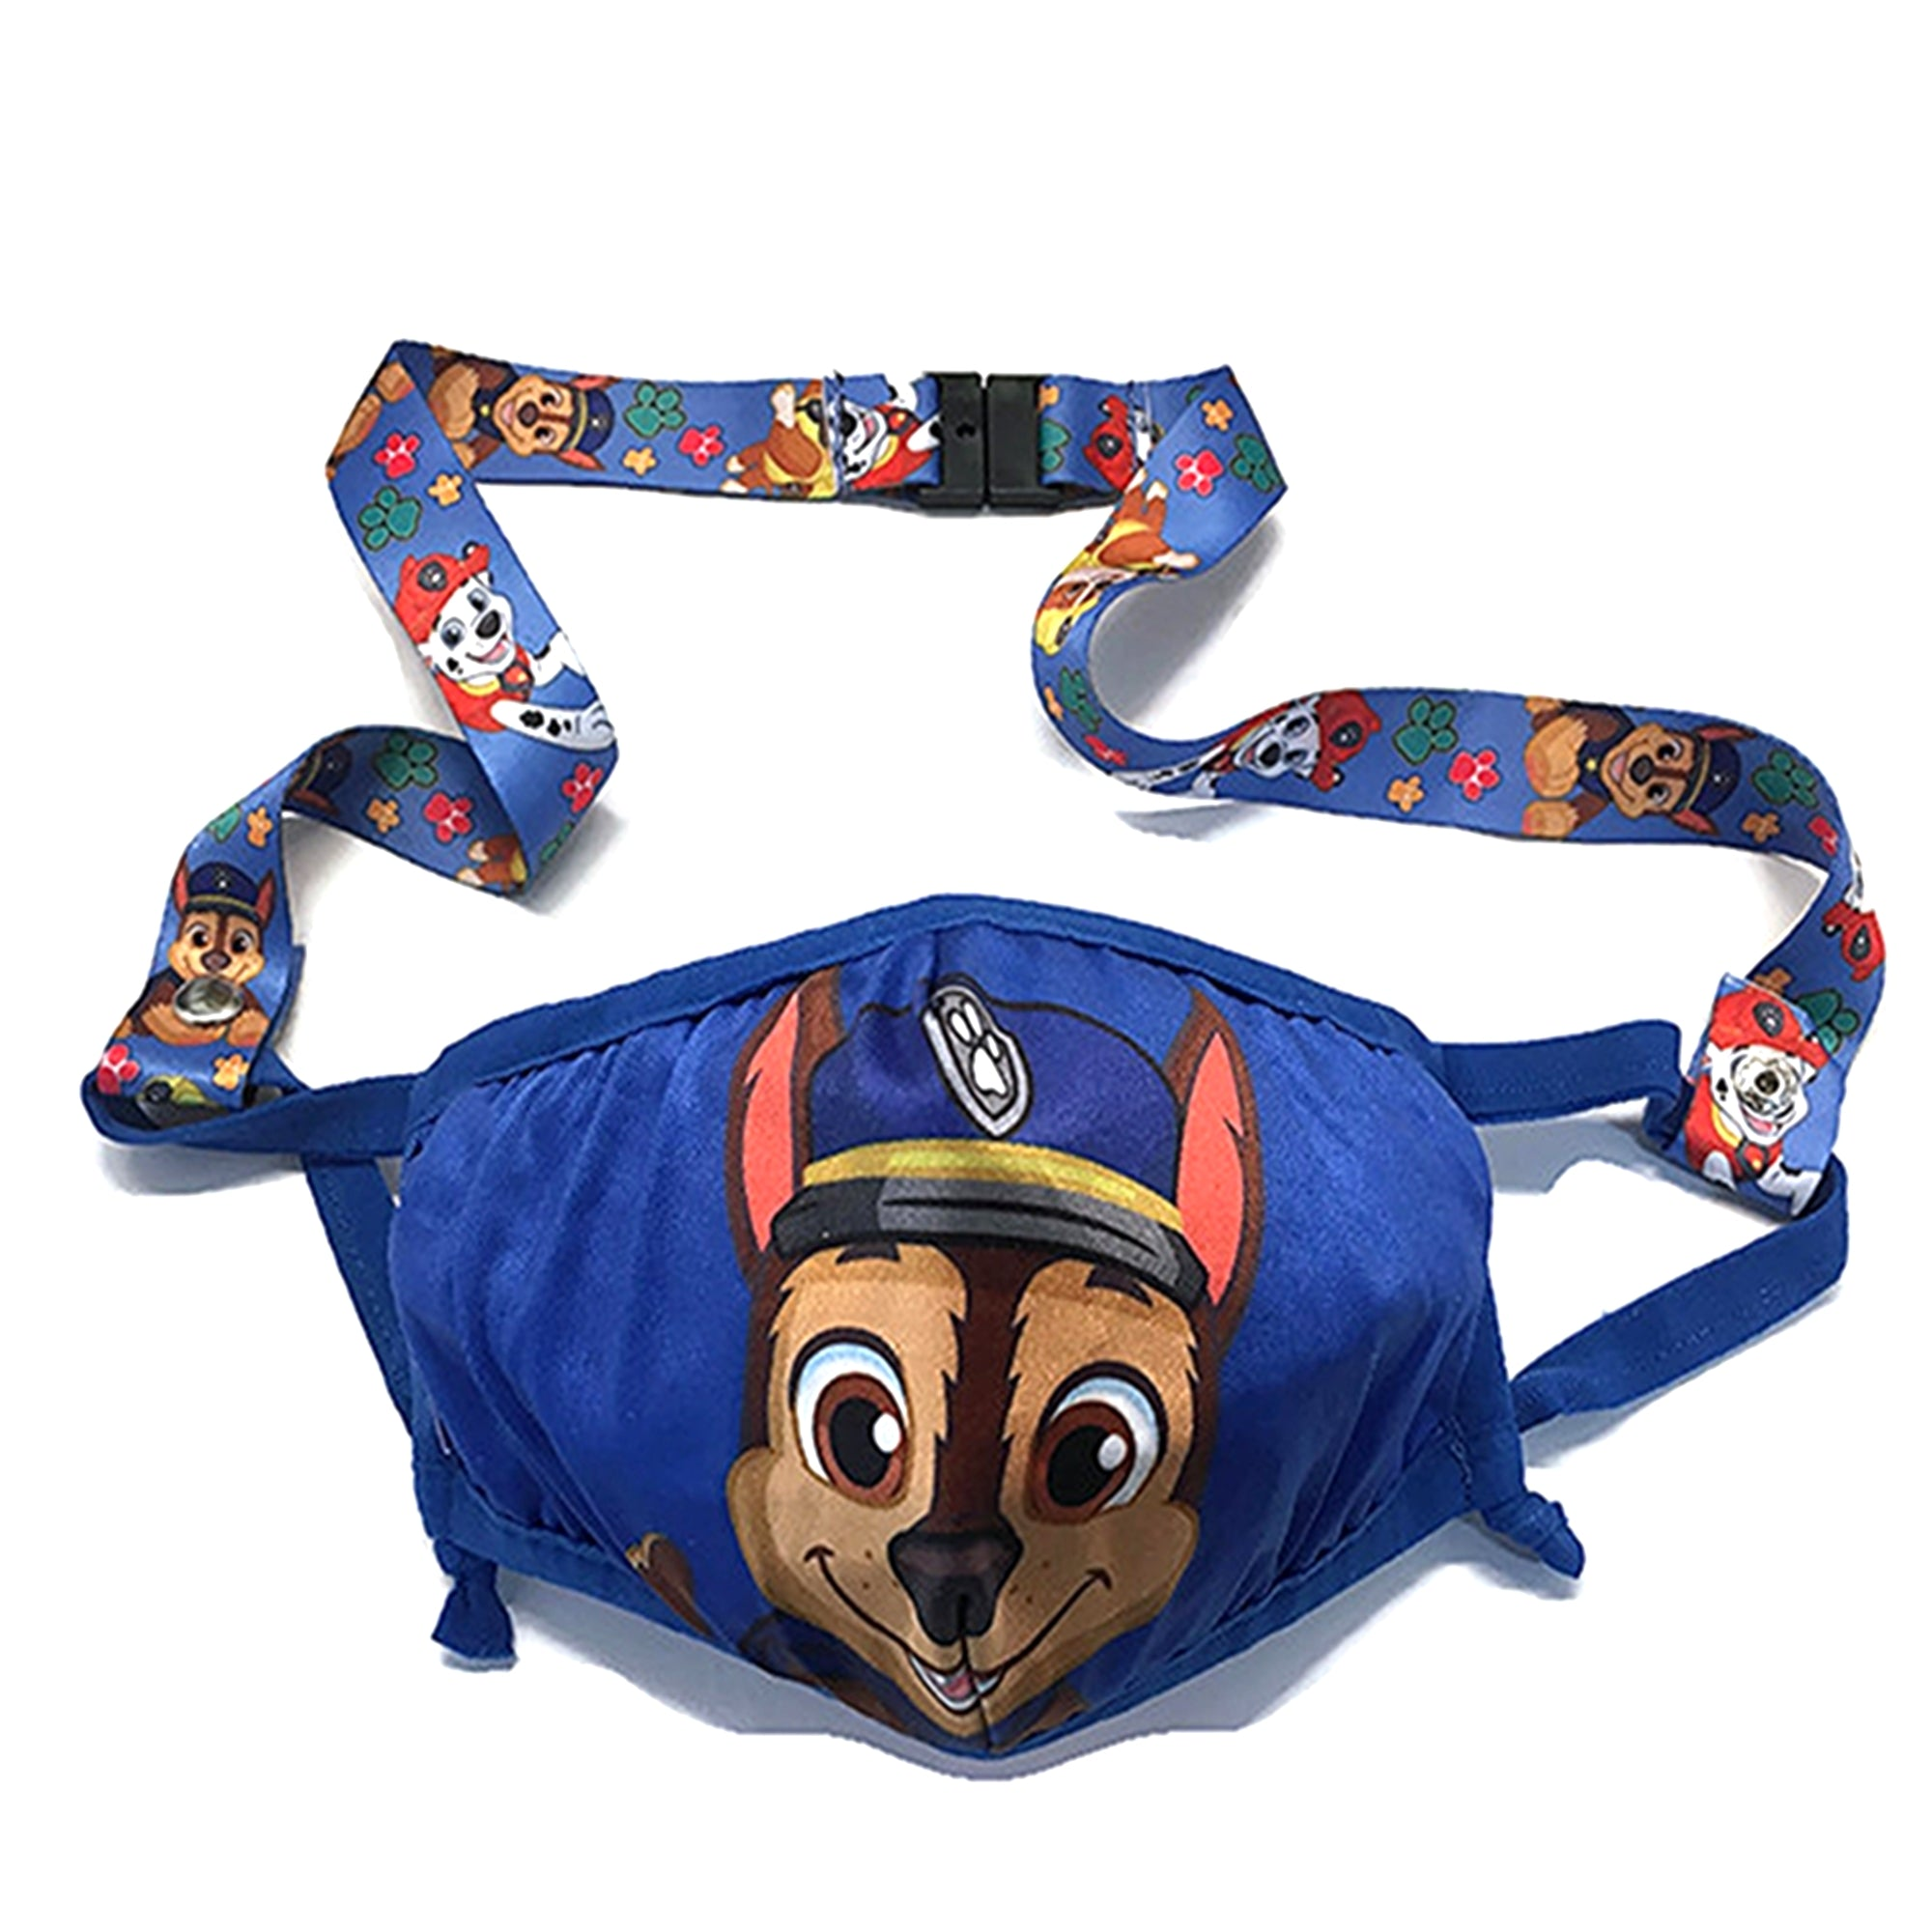 Paw Patrol 2 Layer Kid S Face Cover Mask With Strap Casa Manga